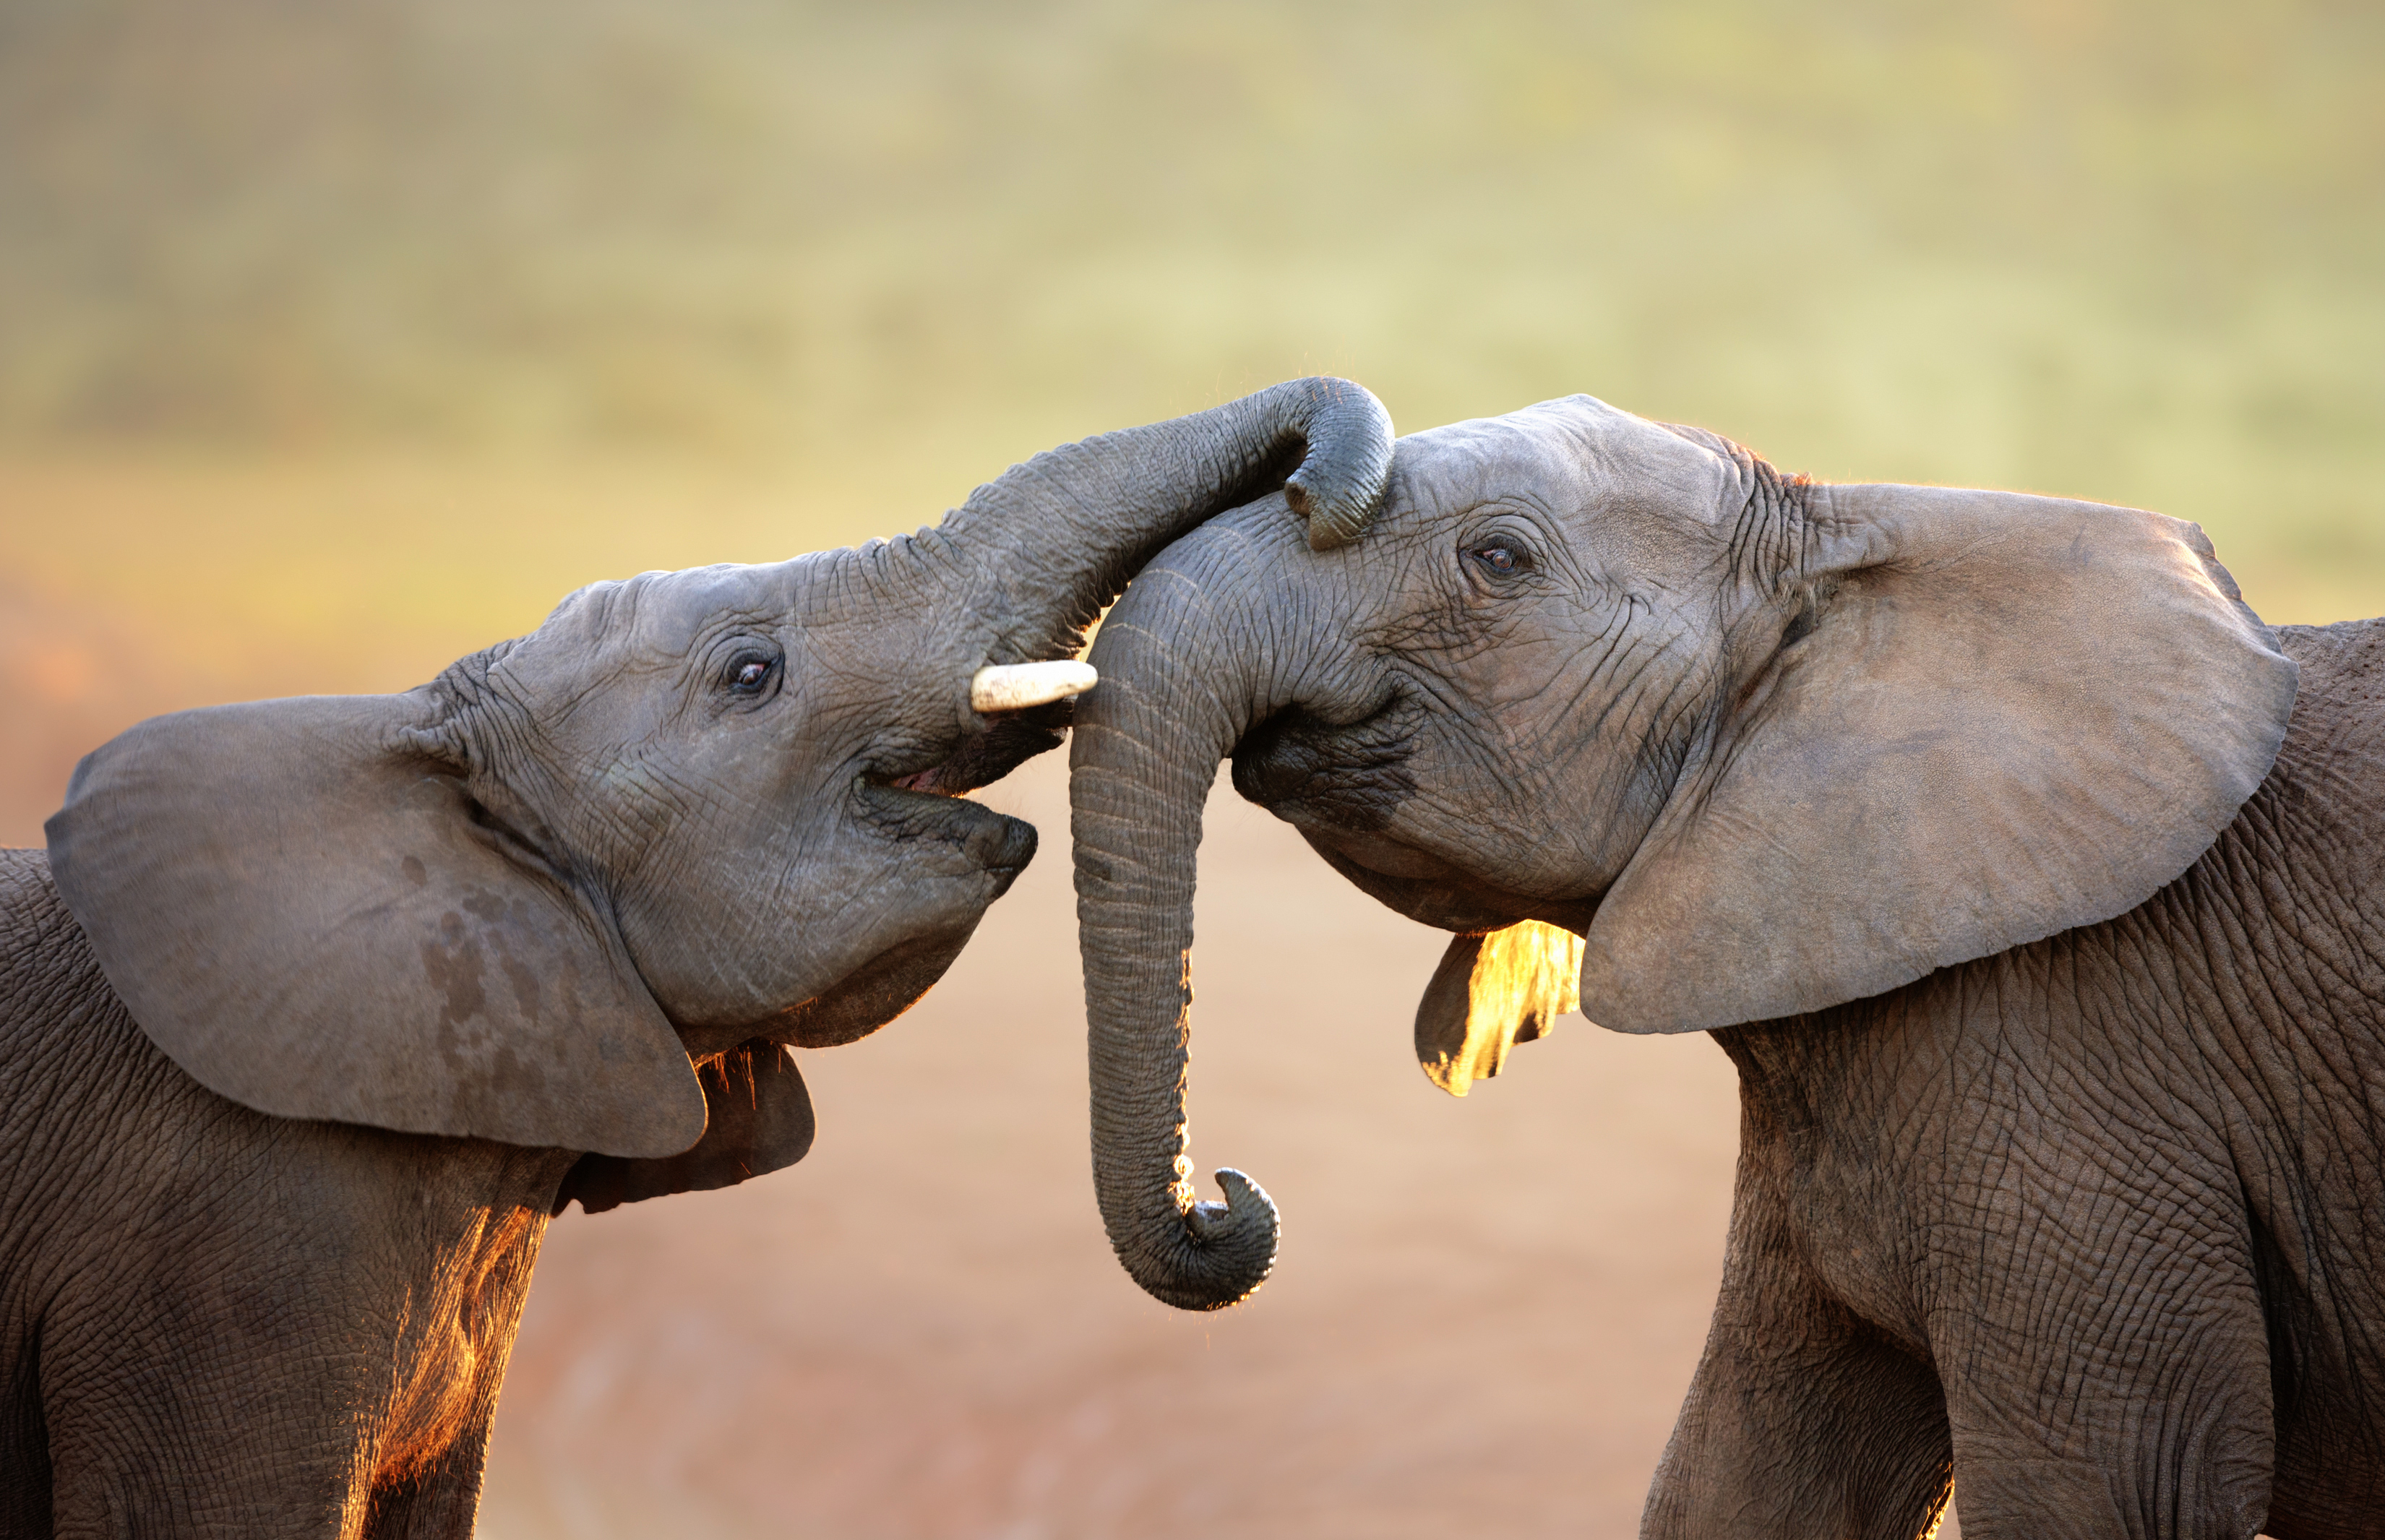 bigstock-elephants-touching-each-other-36460768.jpg